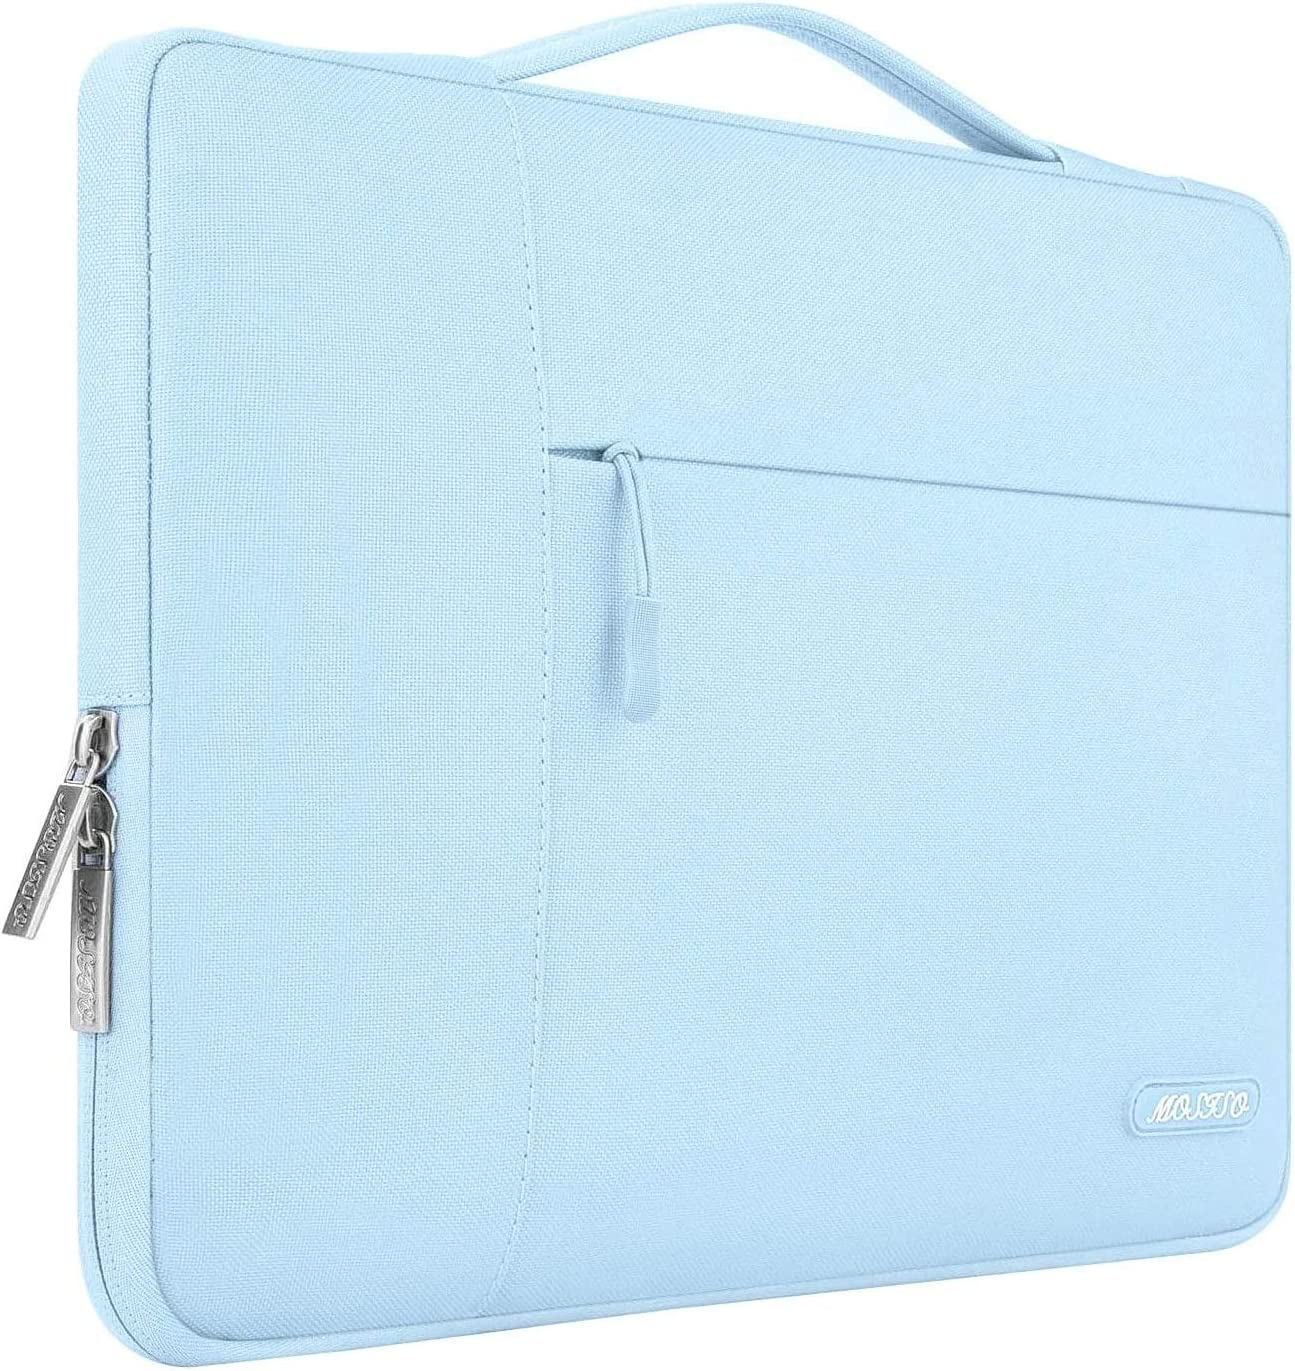 MOSISO Laptop Sleeve Compatible with MacBook Pro 16 inch with Touch Bar A2141, 15 15.4 15.6 inch Dell HP Asus Acer Samsung Sony Chromebook, Polyester Multifunctional Briefcase Bag, Airy Blue